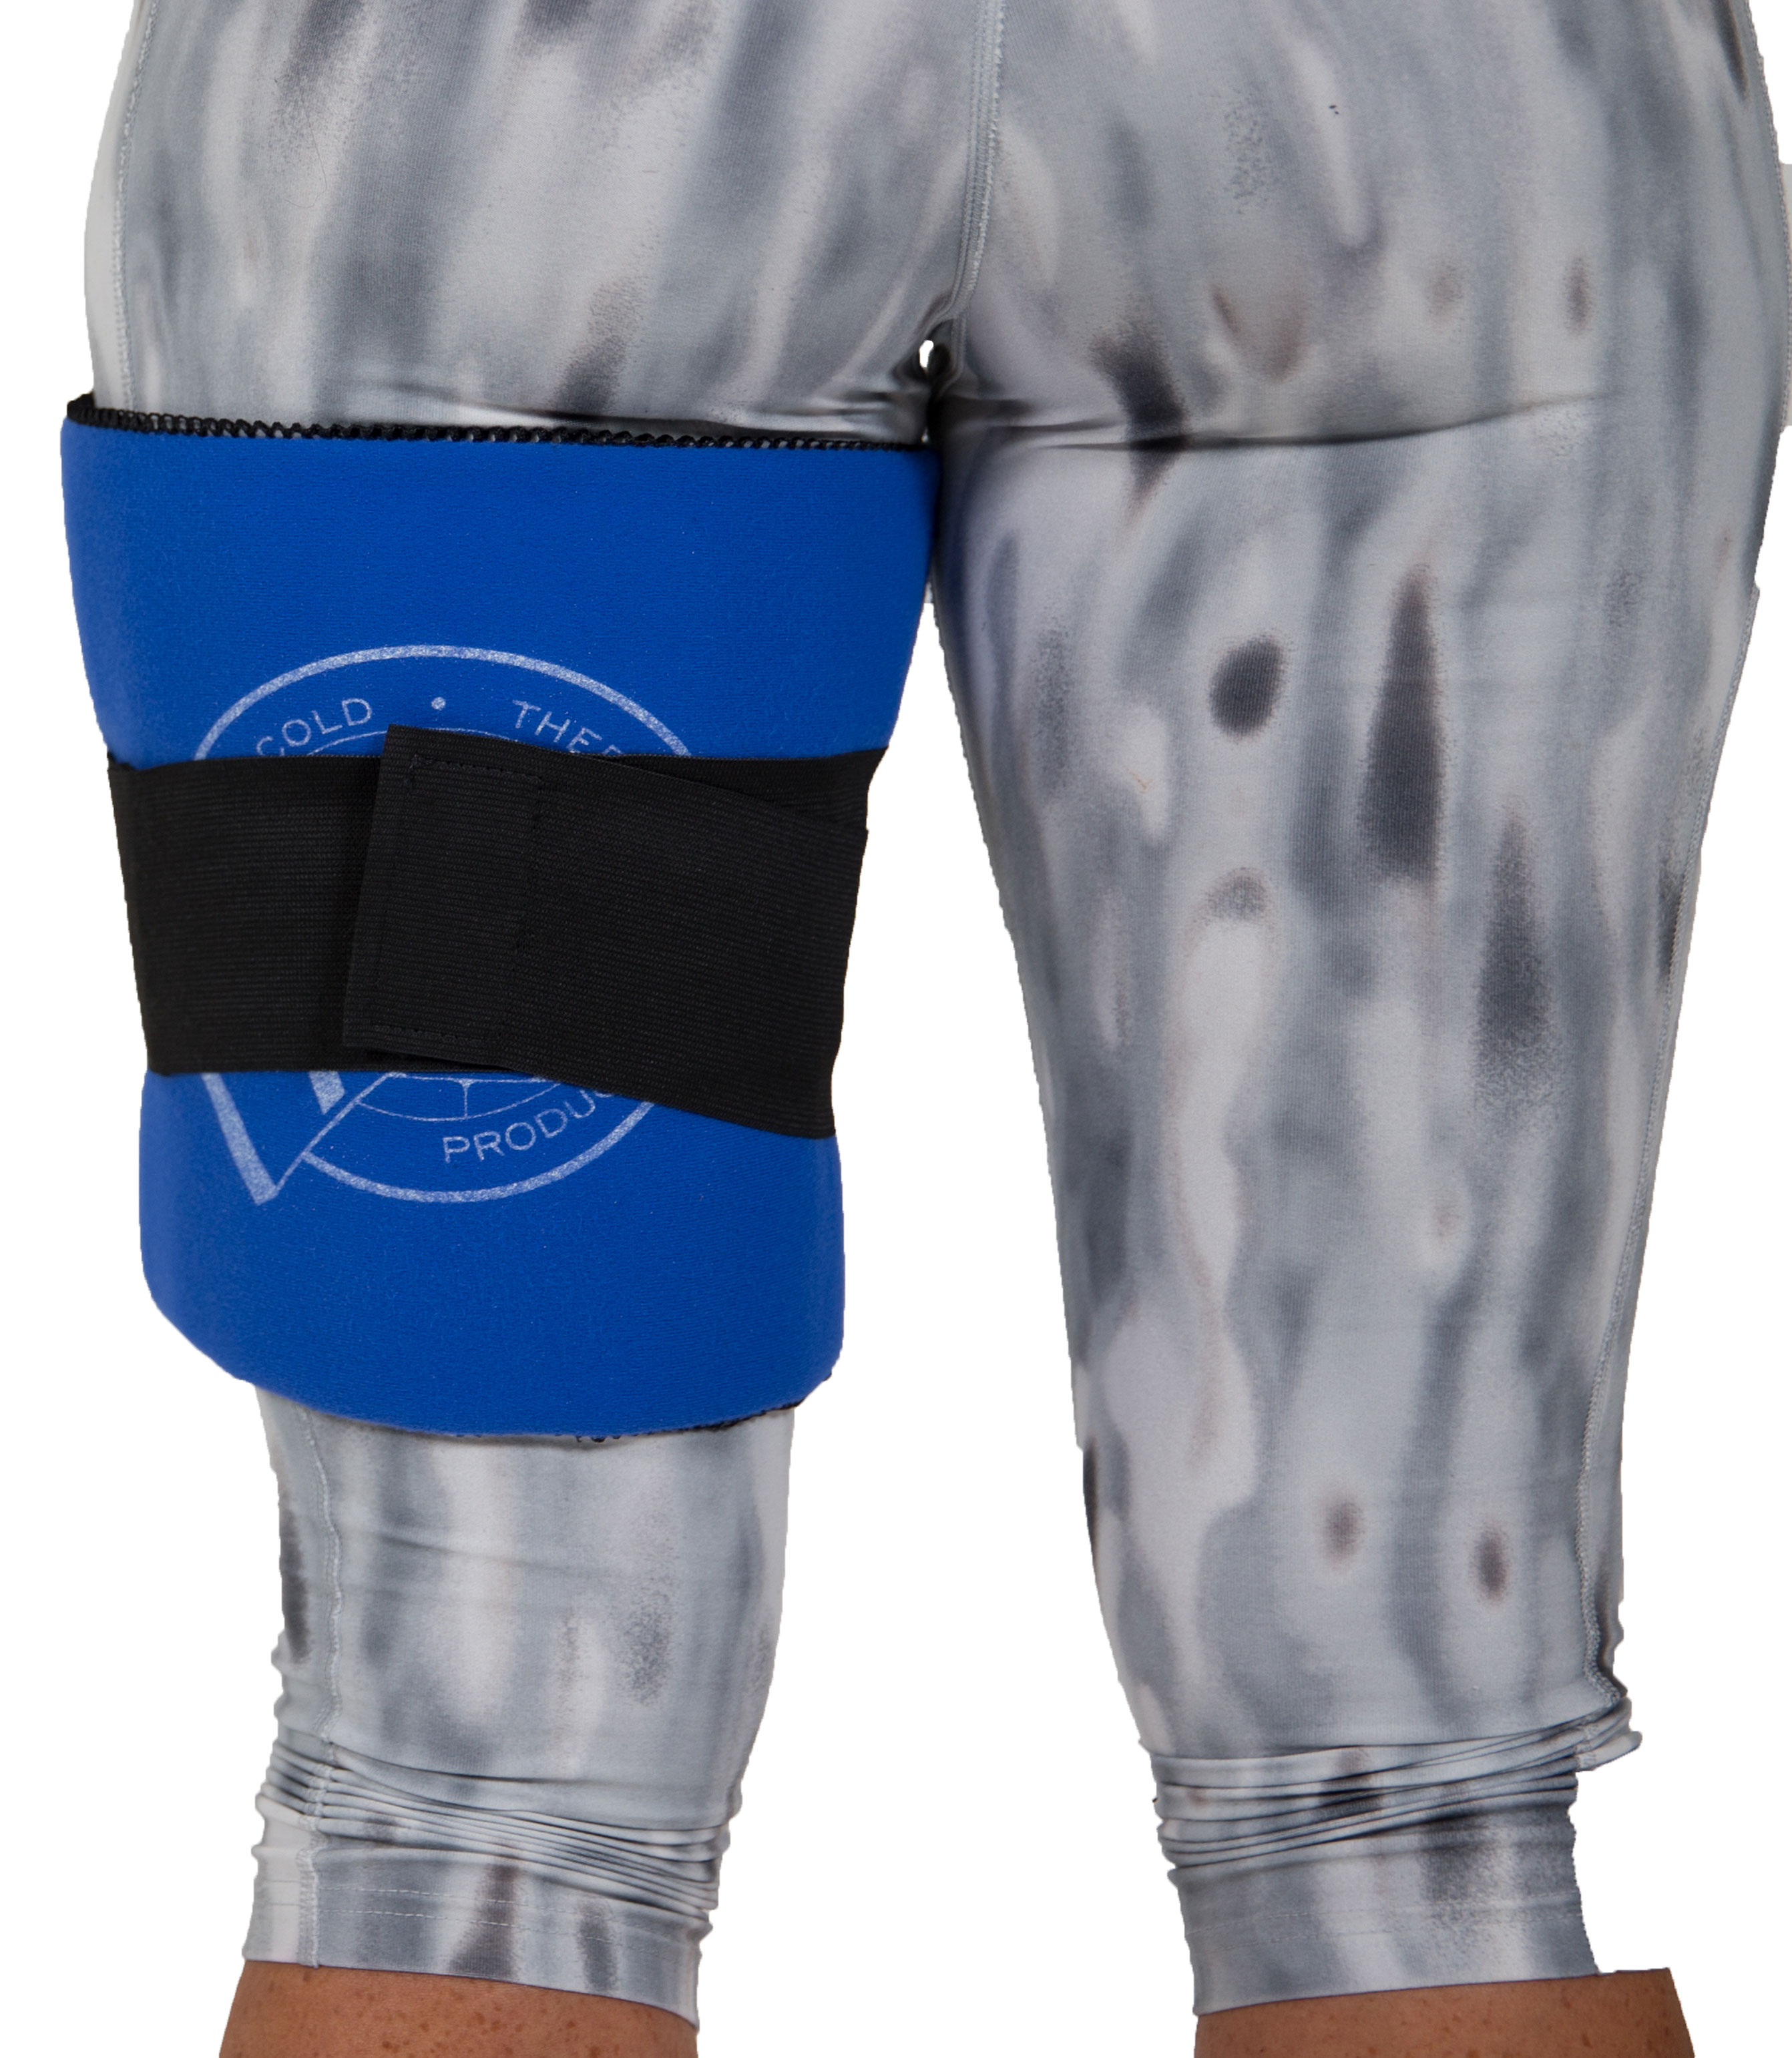 Universal Ice Pack For Hamstring - Provides Compression and Ice Therapy To Multiple Areas Of the Body. pi260